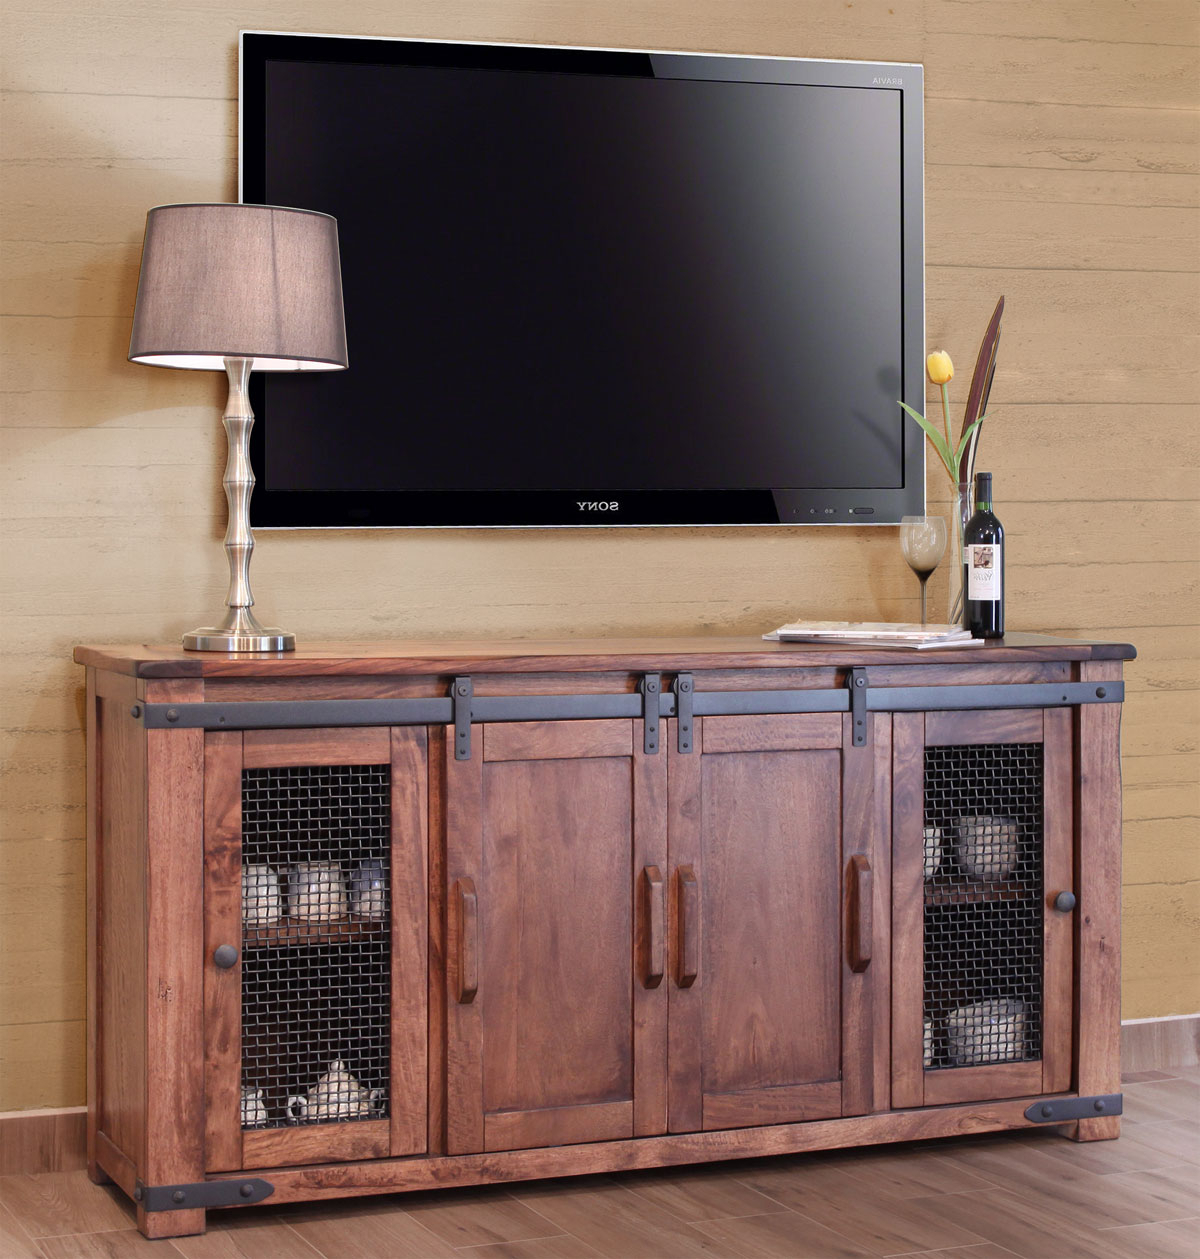 2018 Glass Tv Cabinets With Doors Pertaining To Tv Stands: Glass Tv Stand For 42 Inch Tv Catalogue Tv Stands With (View 1 of 20)